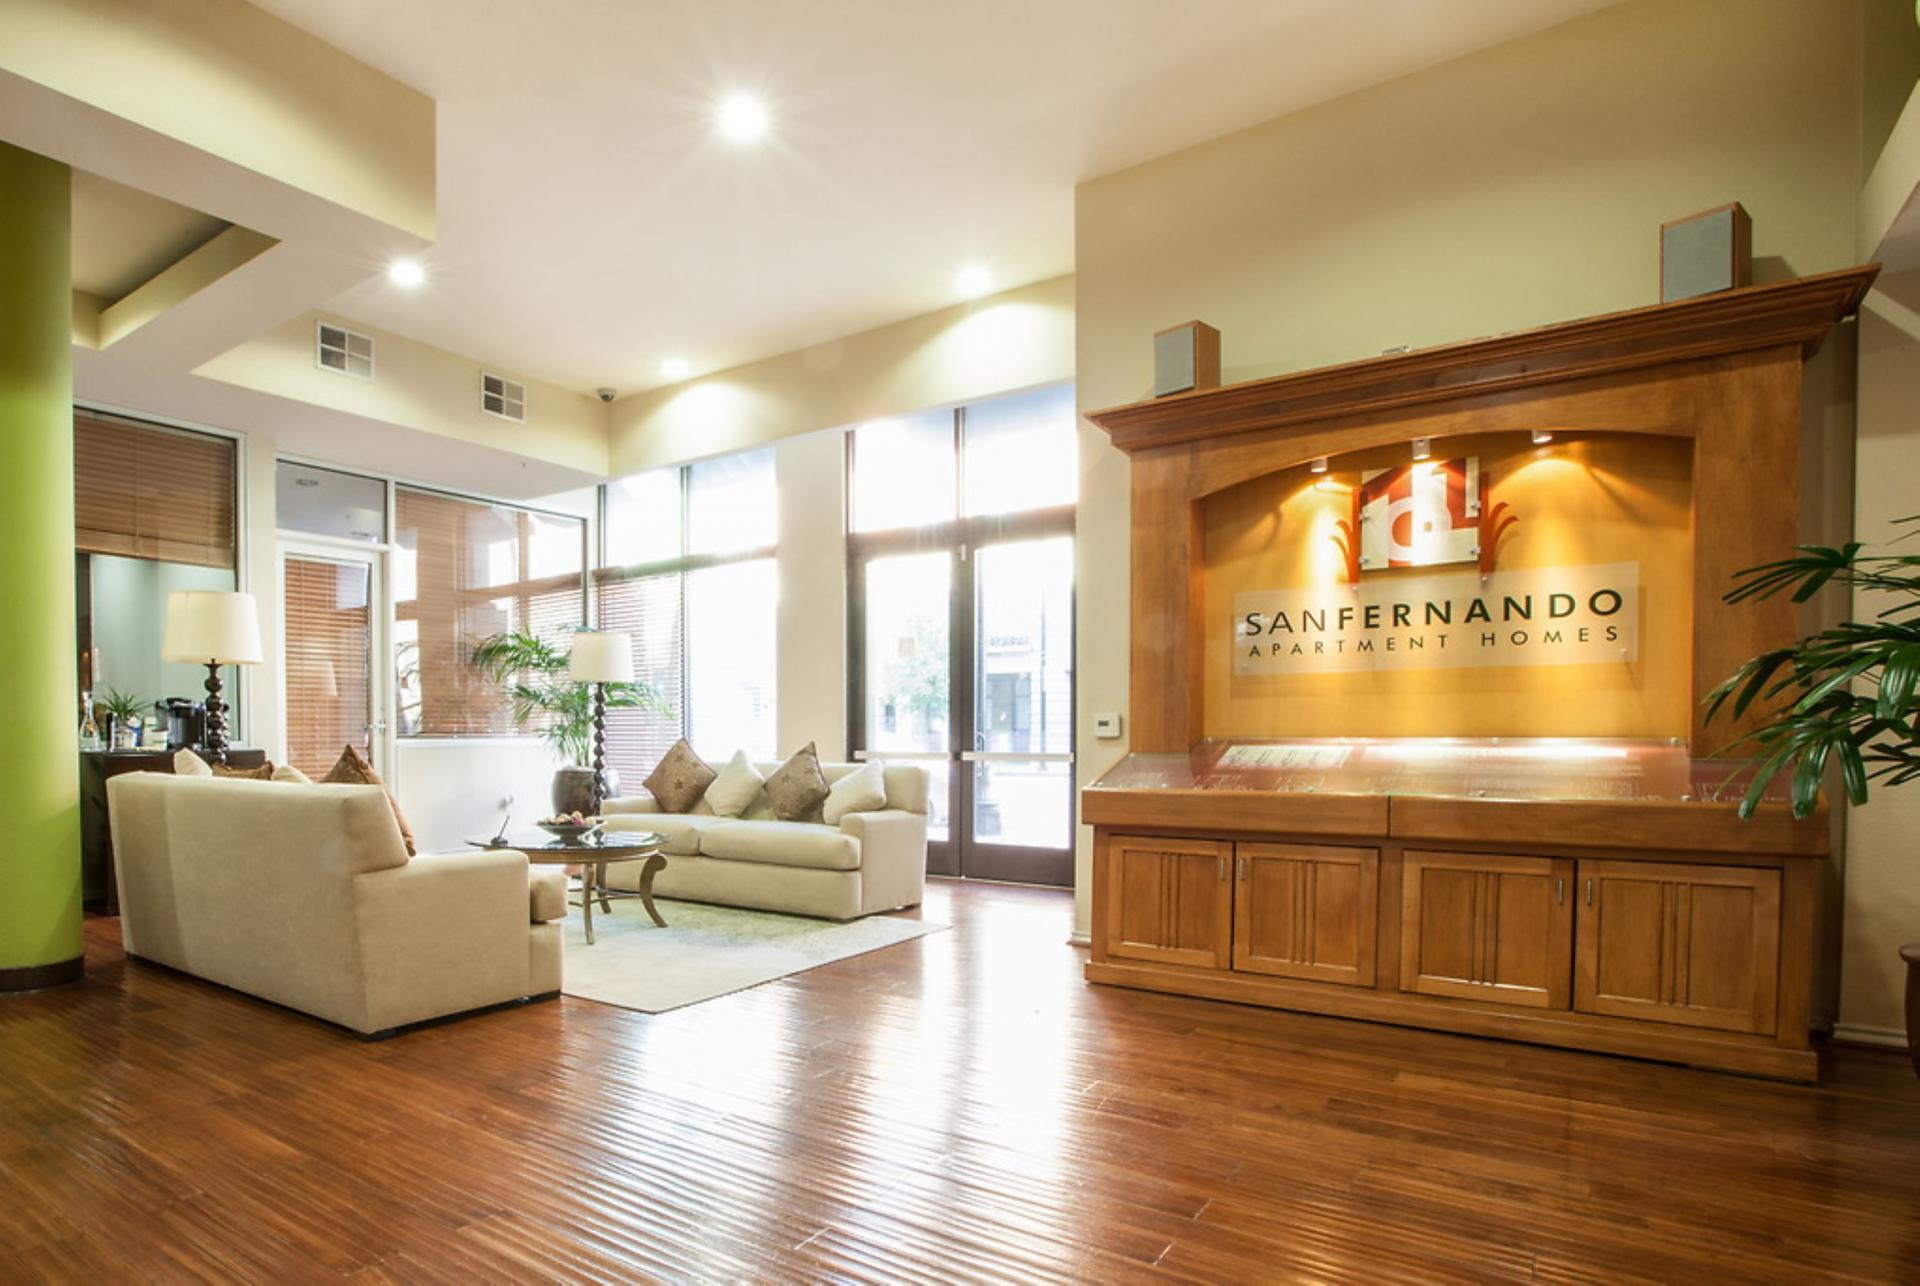 Lobby at San Fernando Apartments, Centre, San Jose